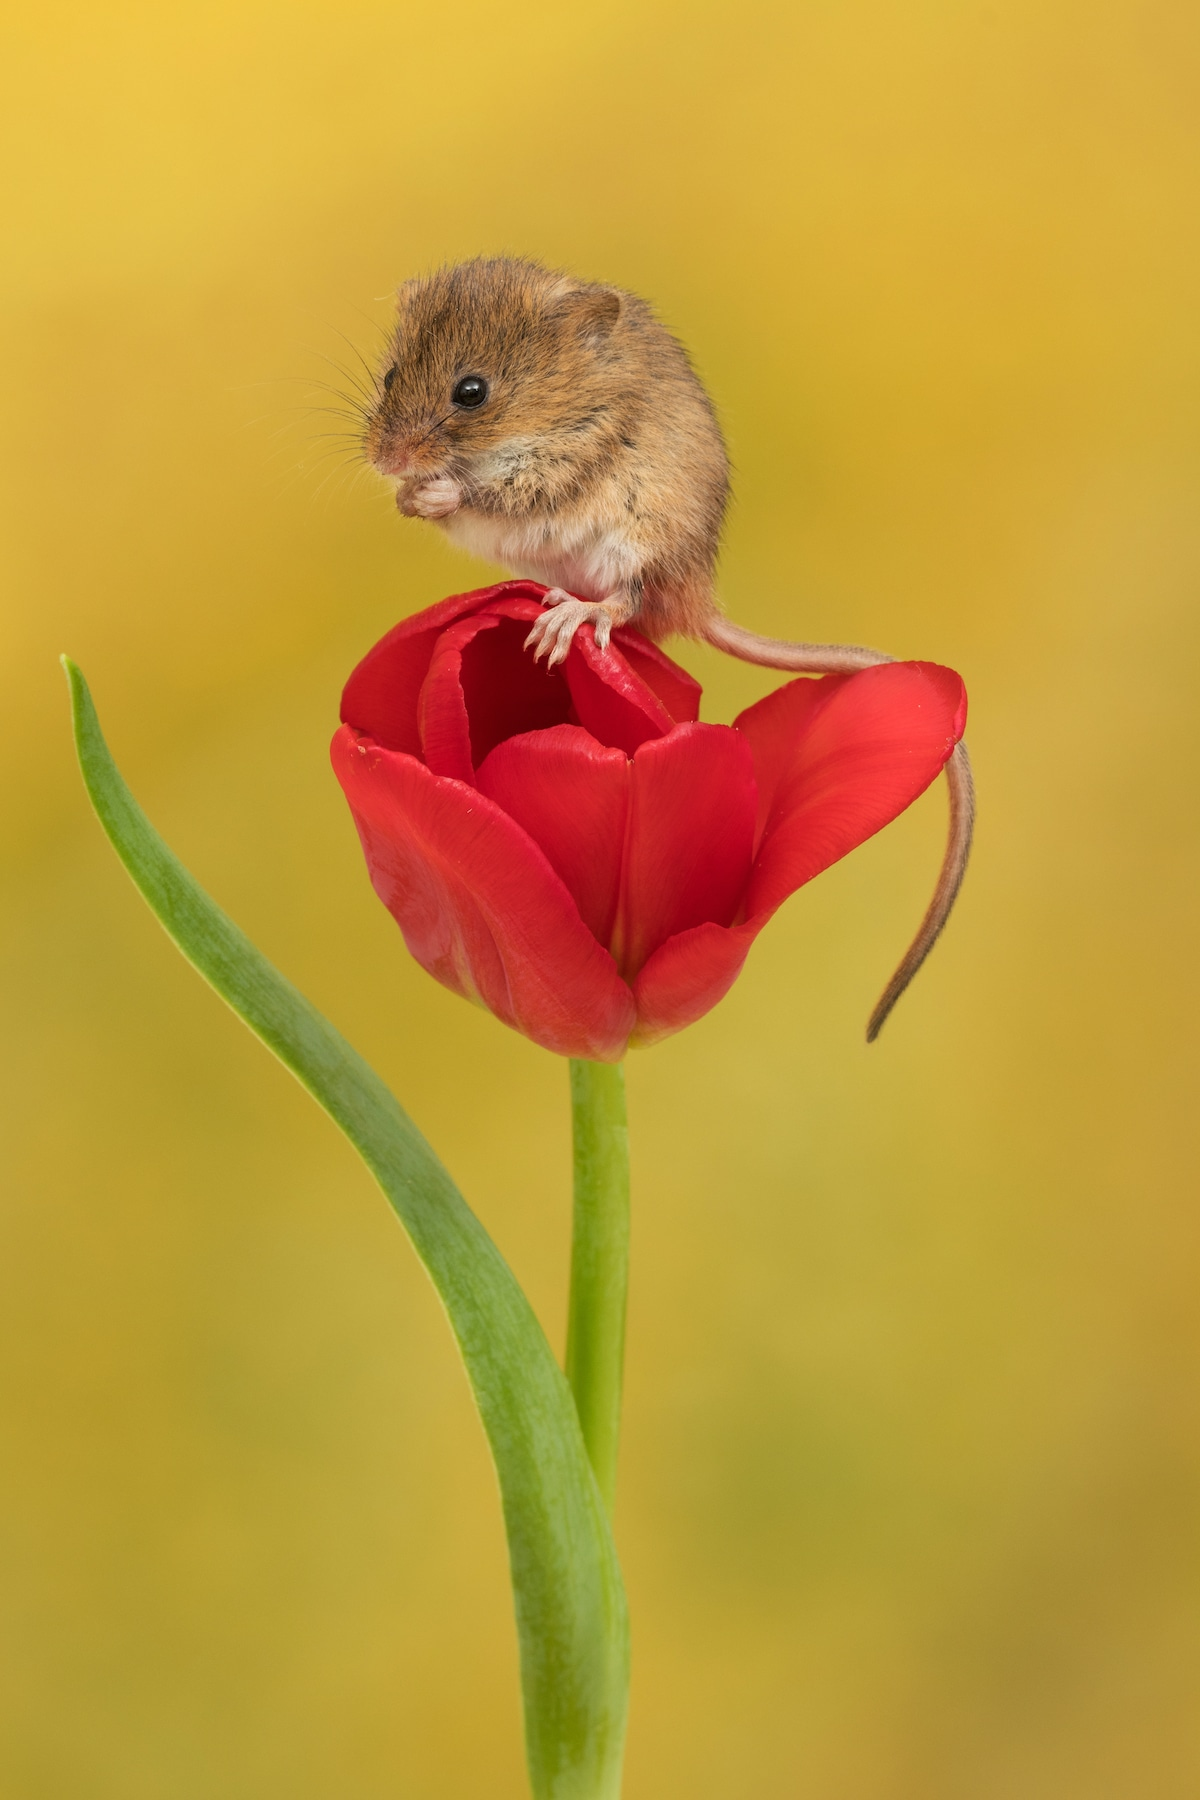 Harvest Mouse Standing on a Tulip